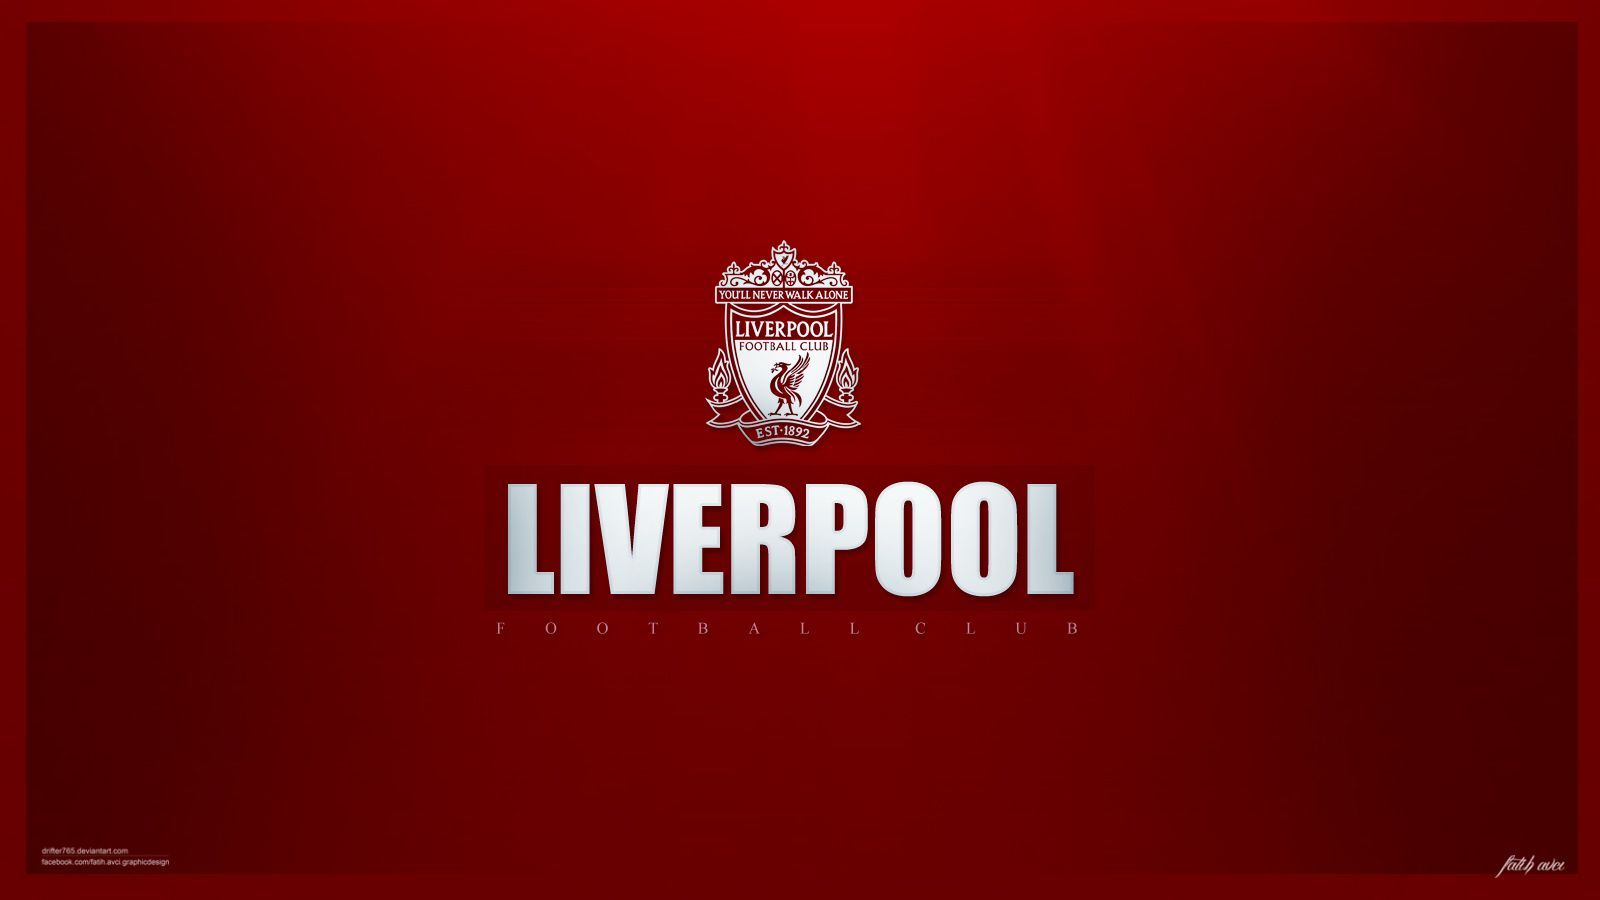 liverpool wallpapers for pc - photo #12